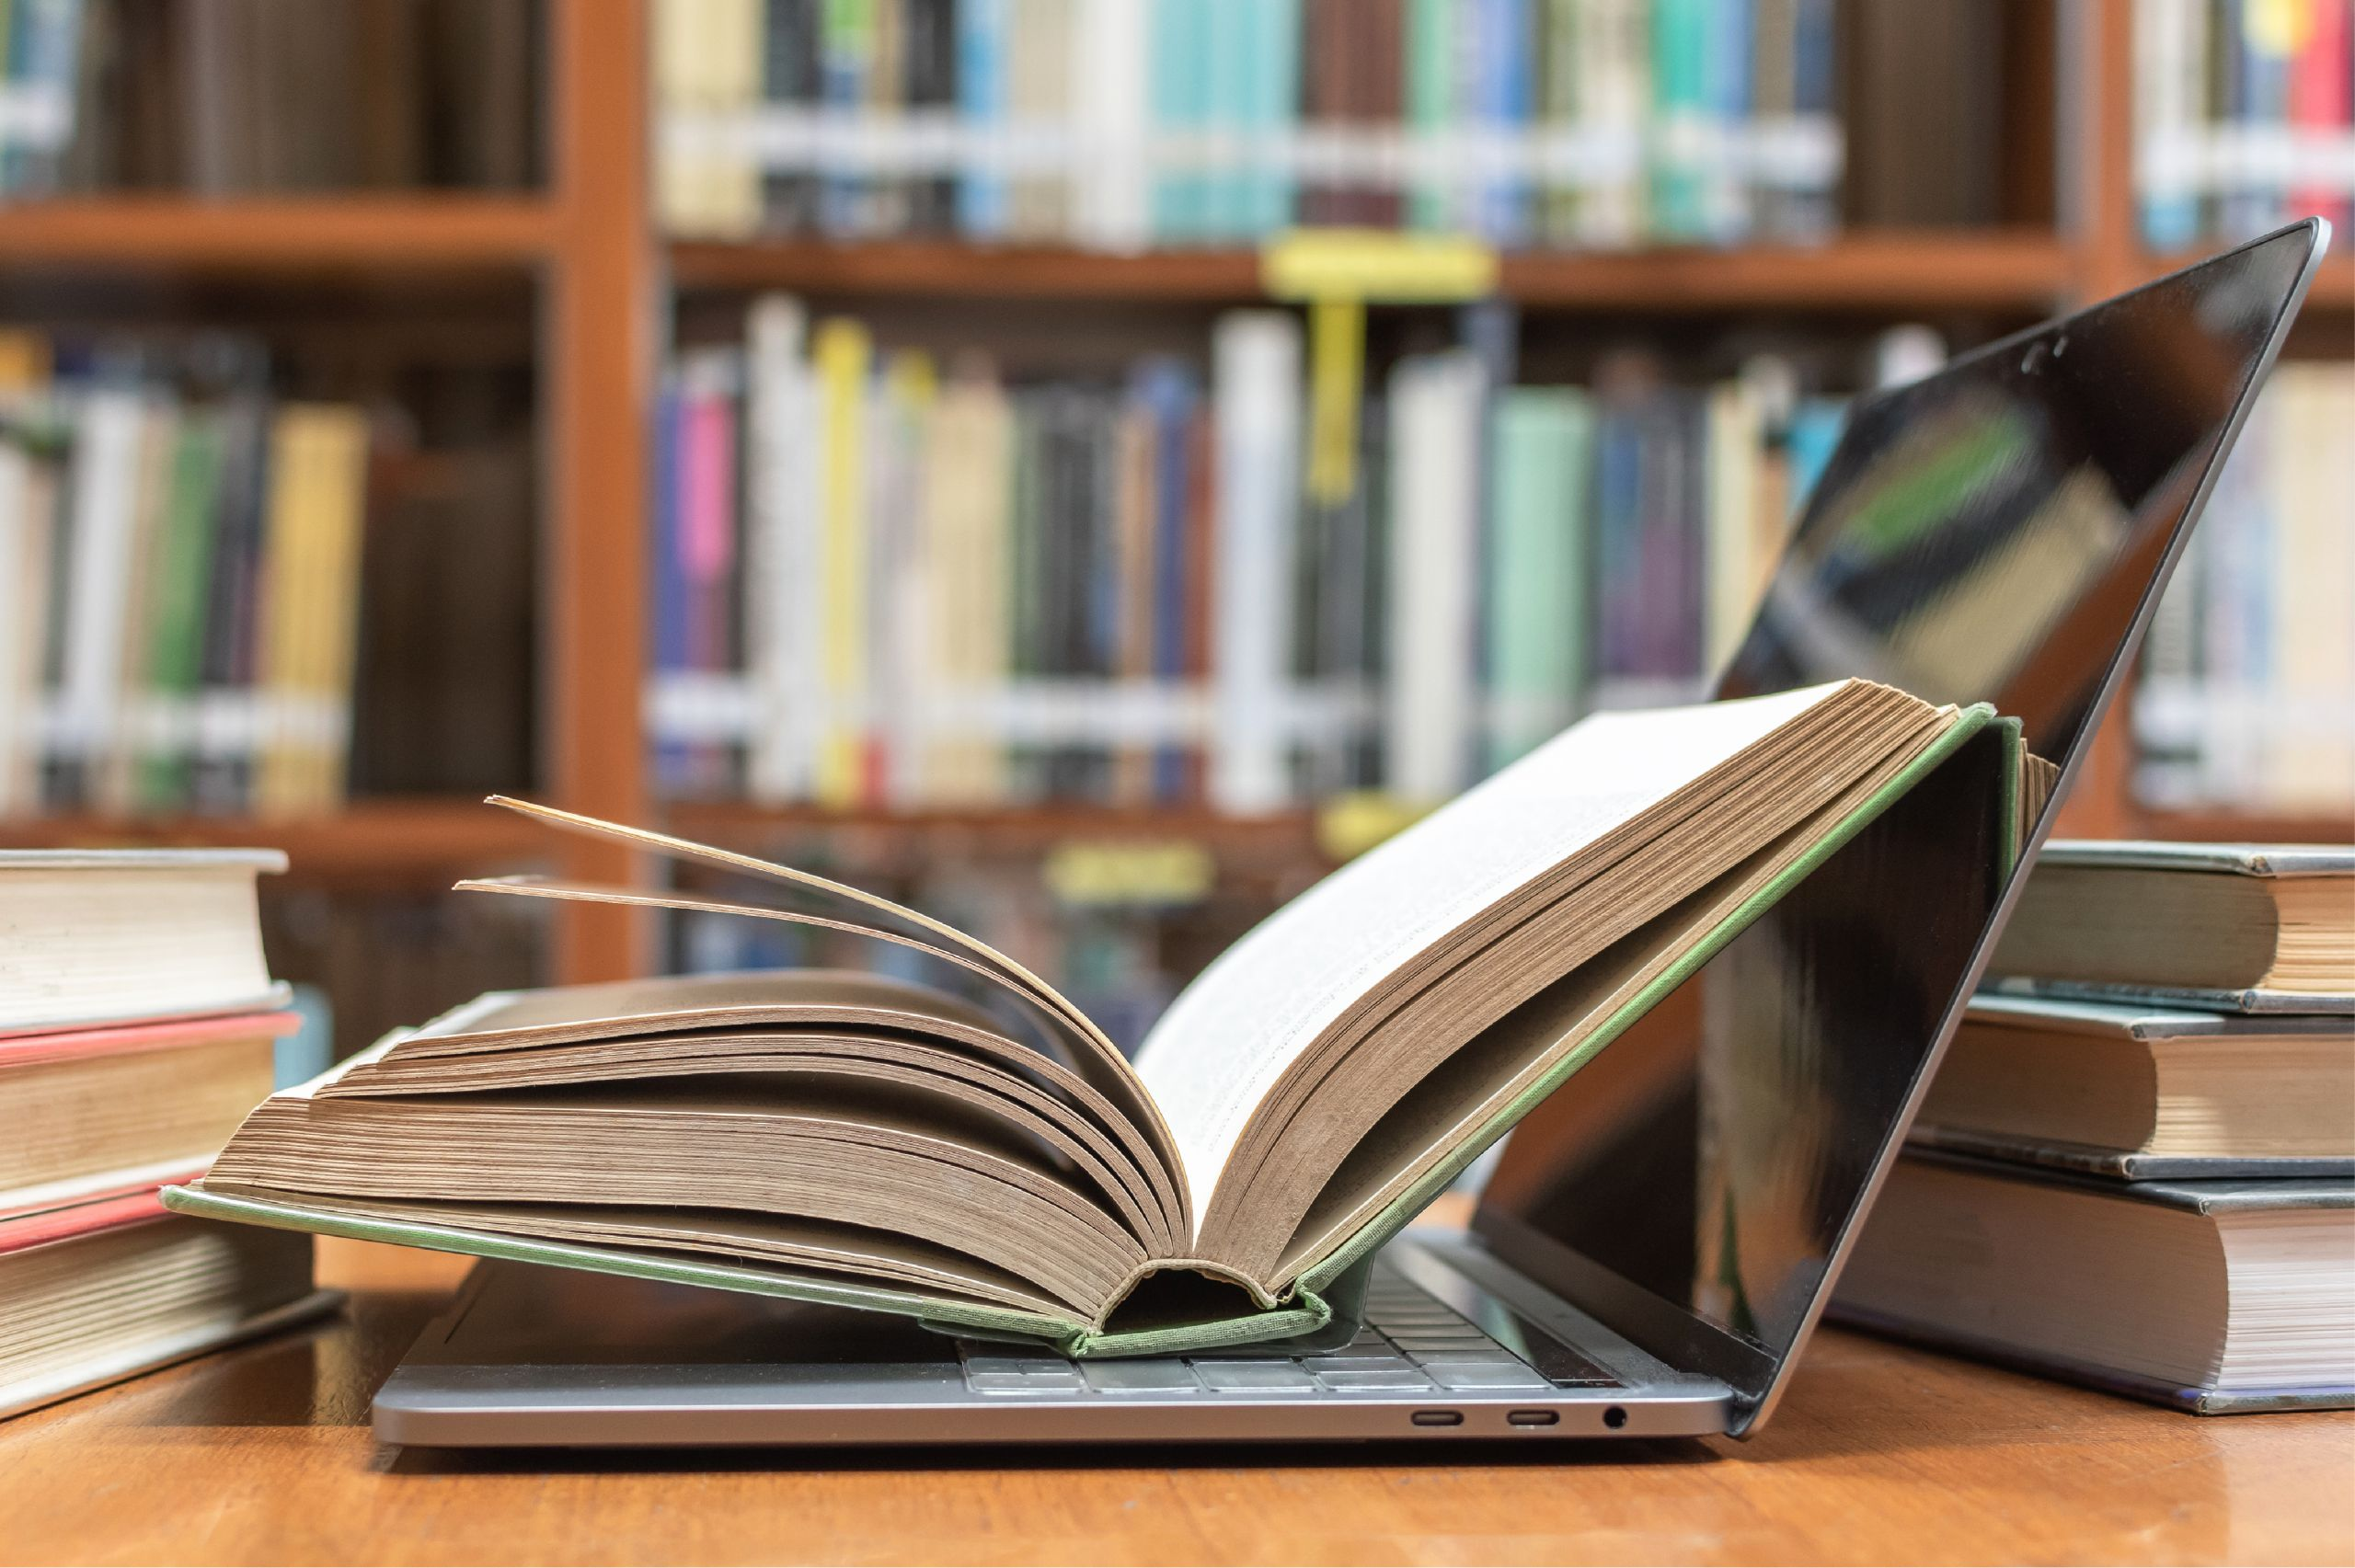 book resting on laptop in library